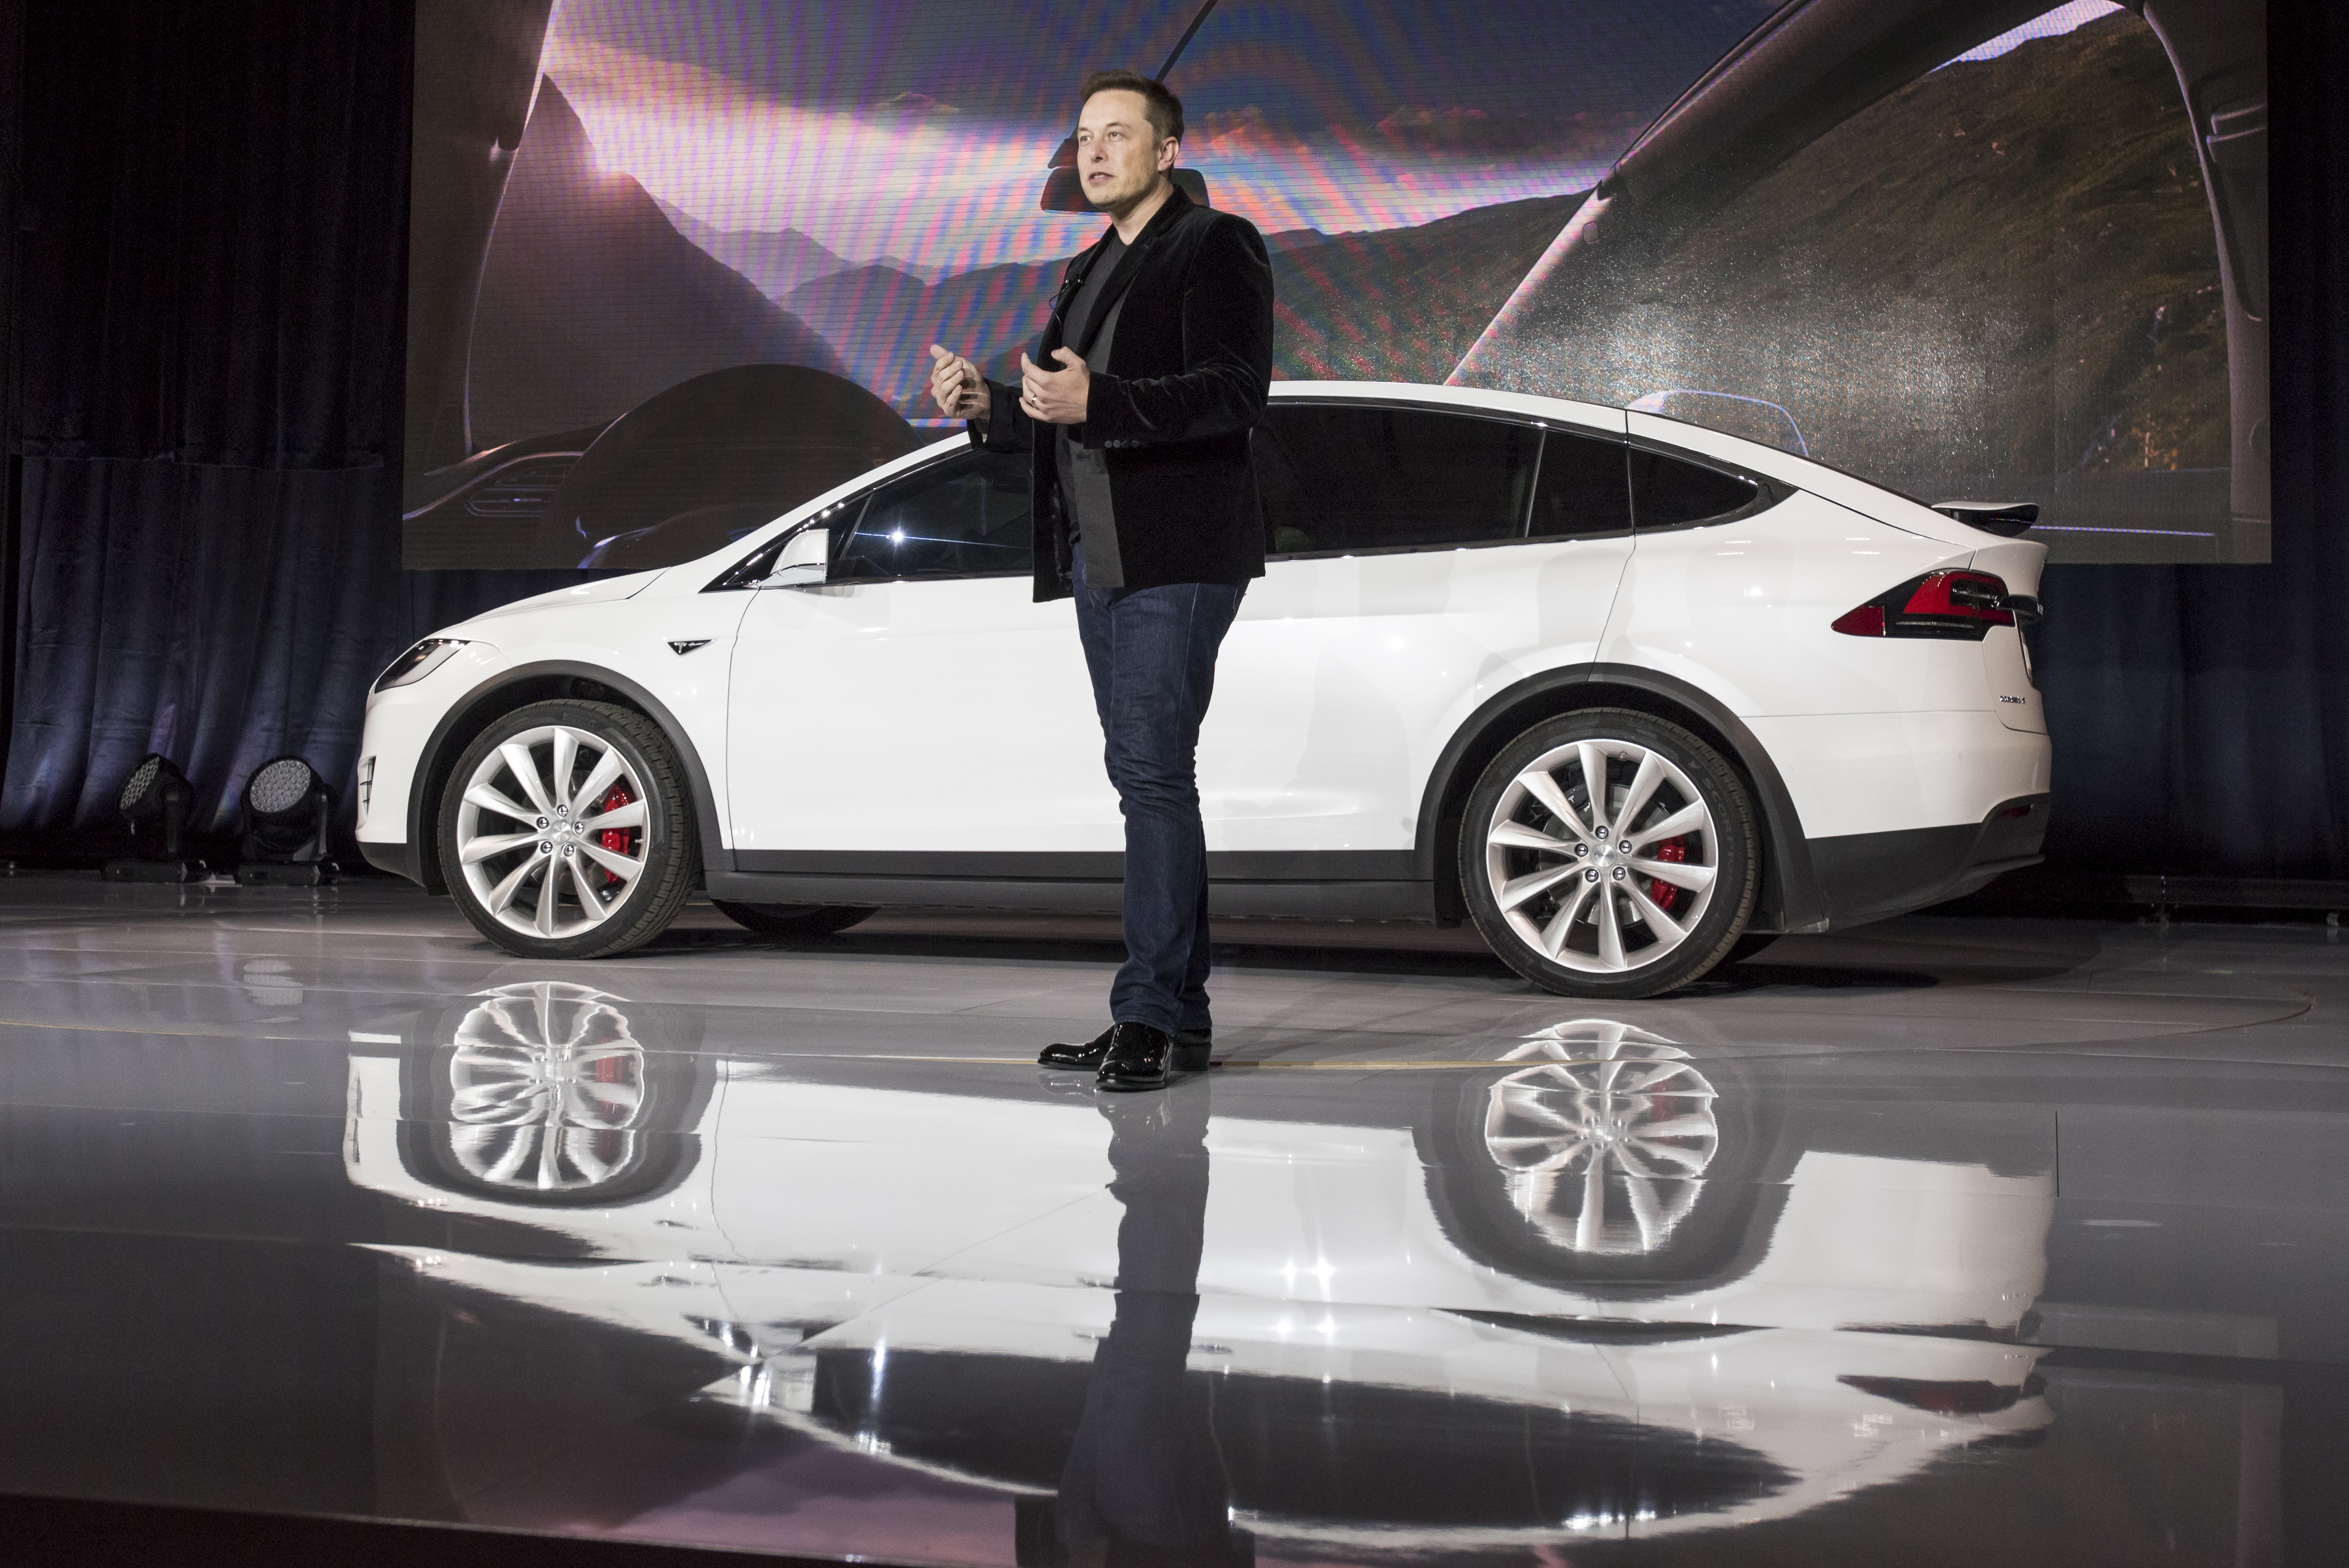 """Elon Musk unveiled the <a href=""""https://arstechnica.com/cars/2018/01/teslas-model-x-a-lovely-roadtripper-with-stiff-daily-driving-competition/"""">Model X</a> back in 2015."""